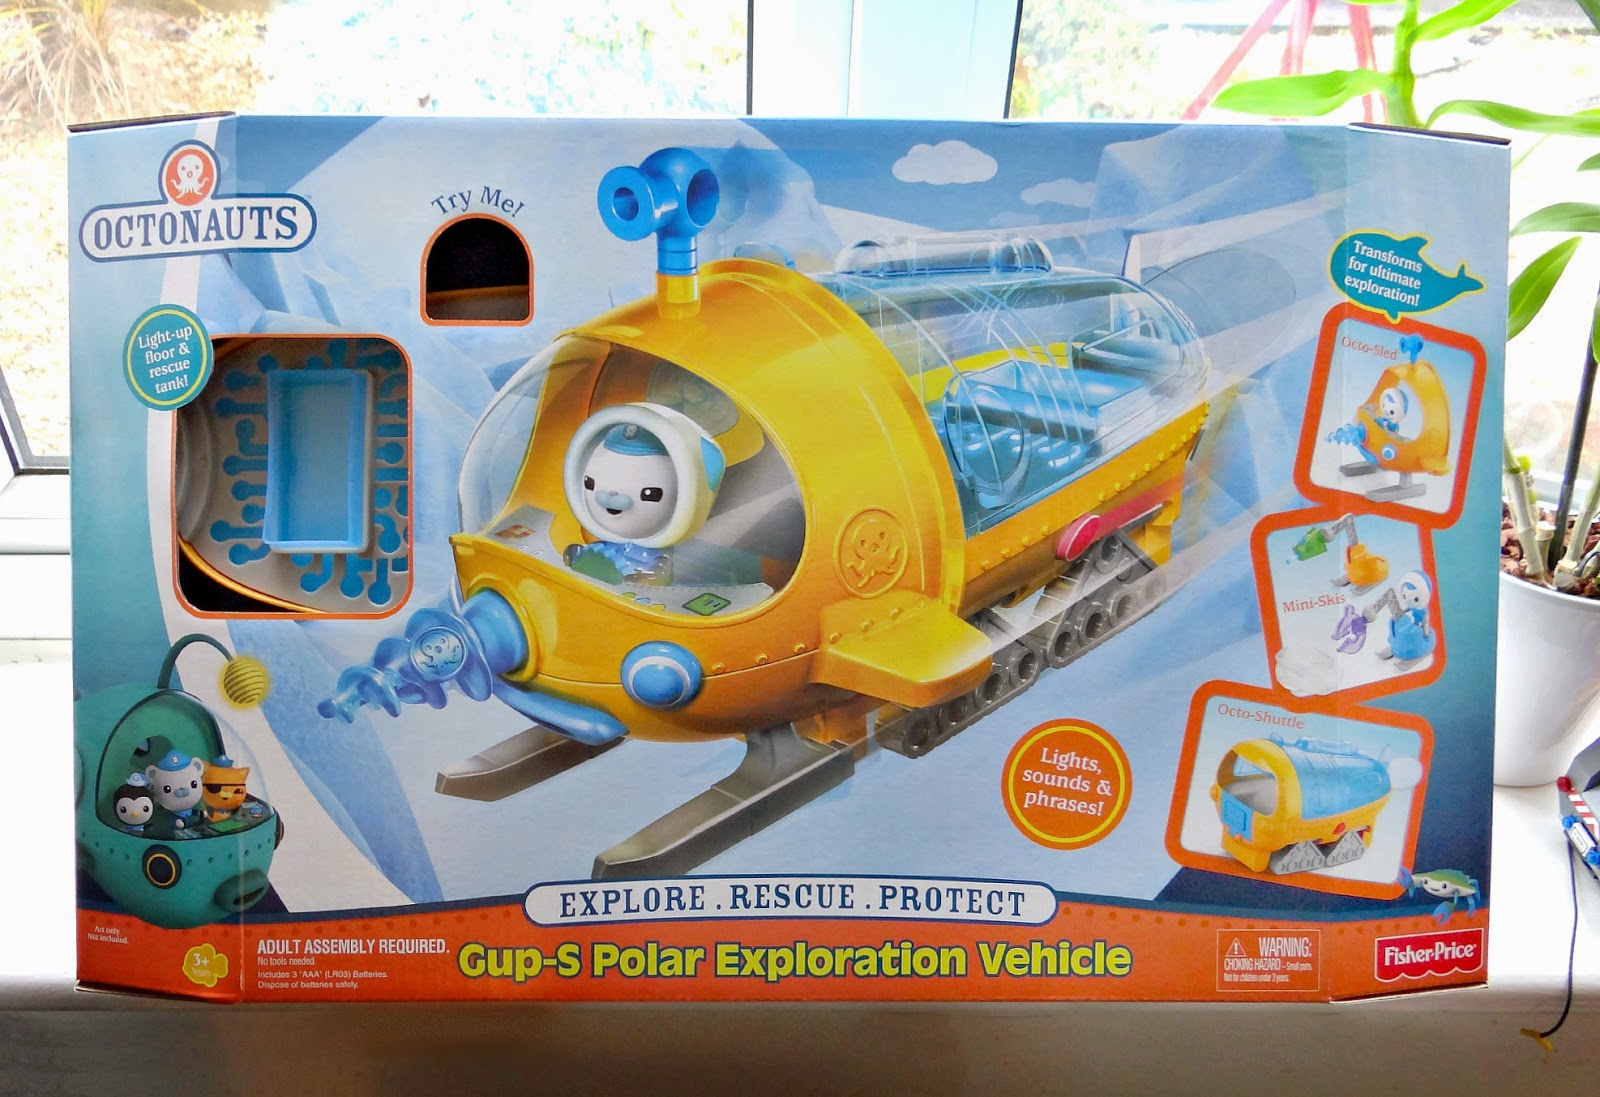 New Fisher-Price Octonauts Toy - Gup-S Polar Exploration Vehicle ...